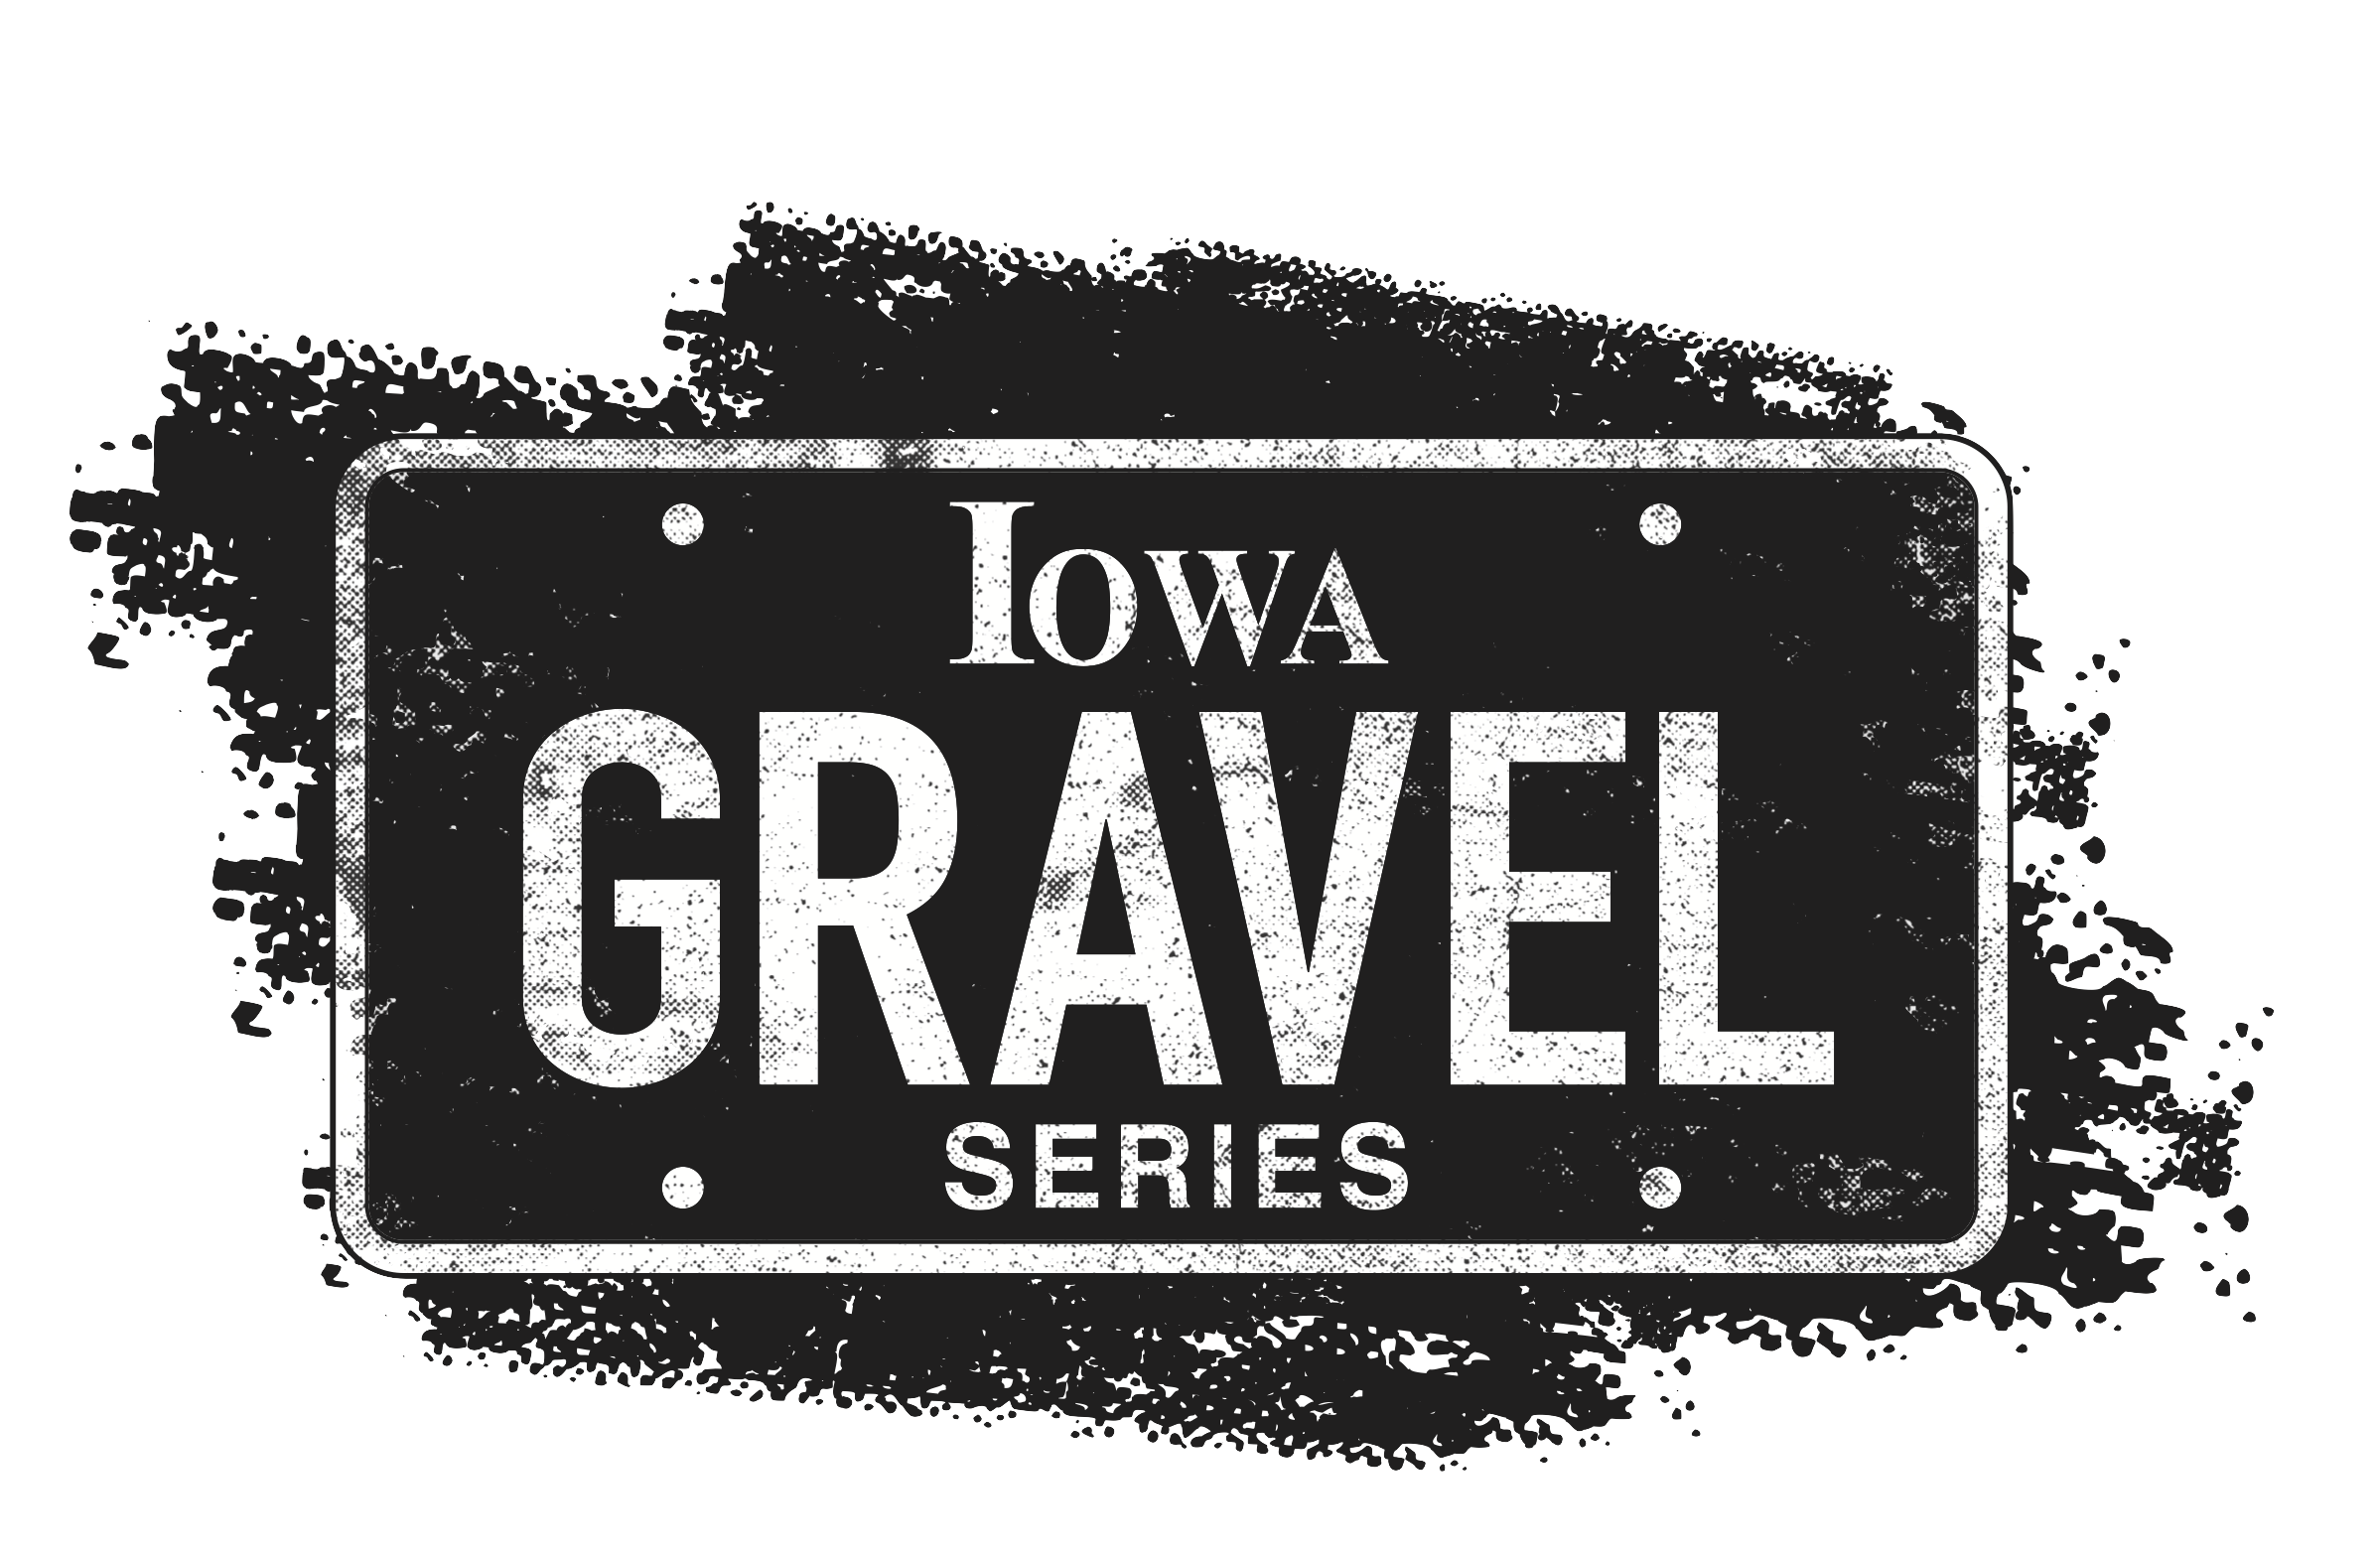 Iowa Gravel Series